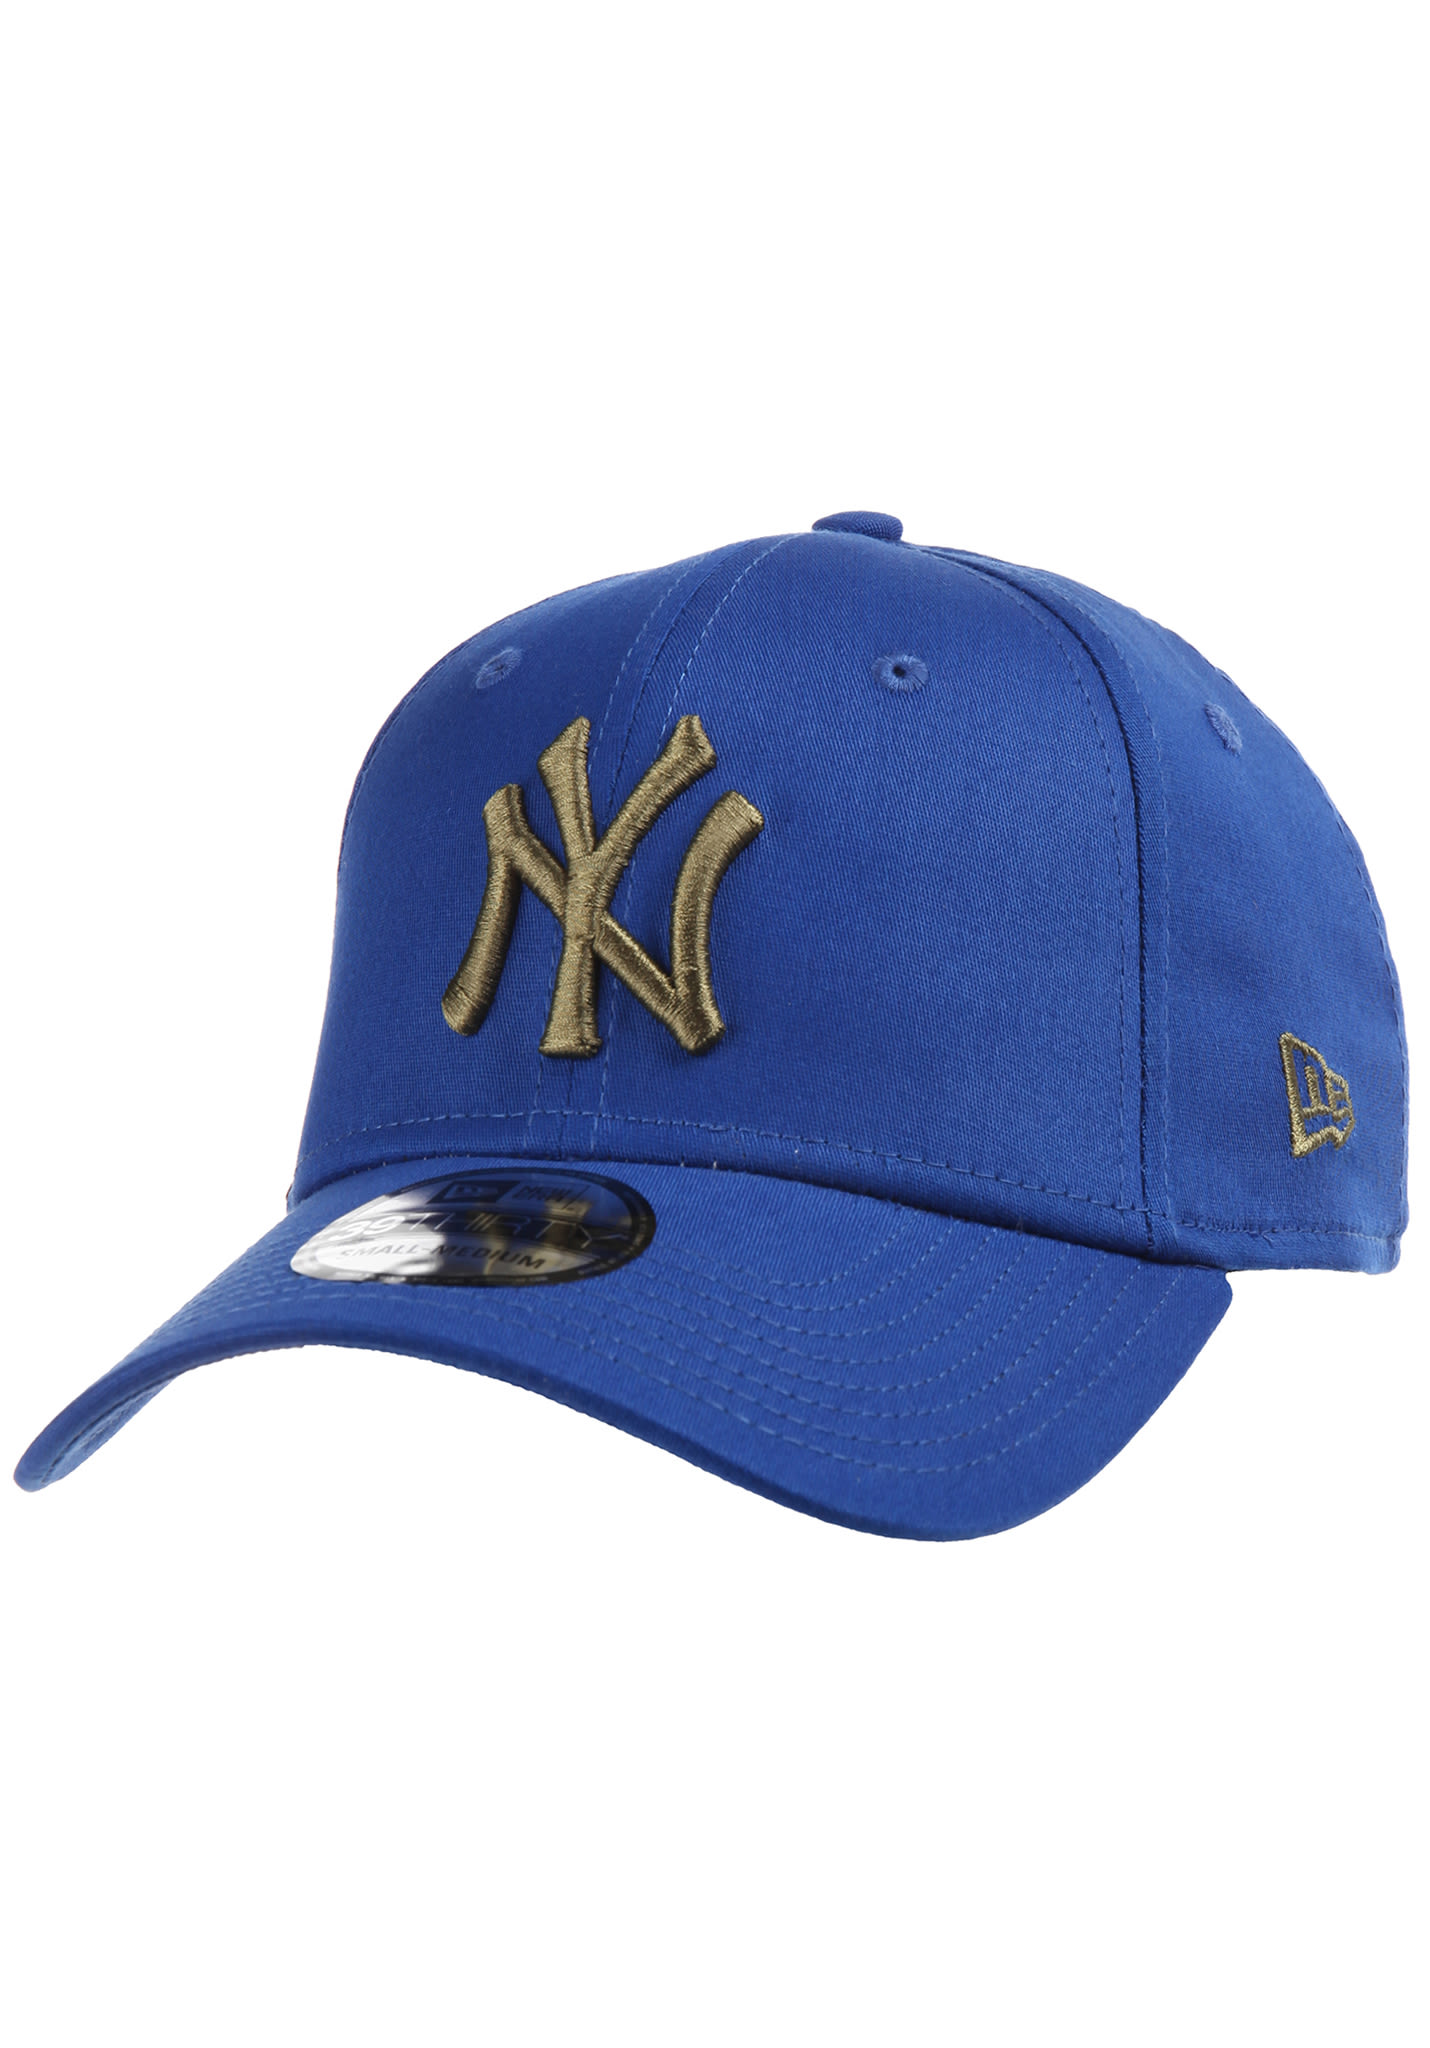 2732546f644 NEW Era 39Thirty New York Yankees - Flexfit Cap - Blue - Planet Sports